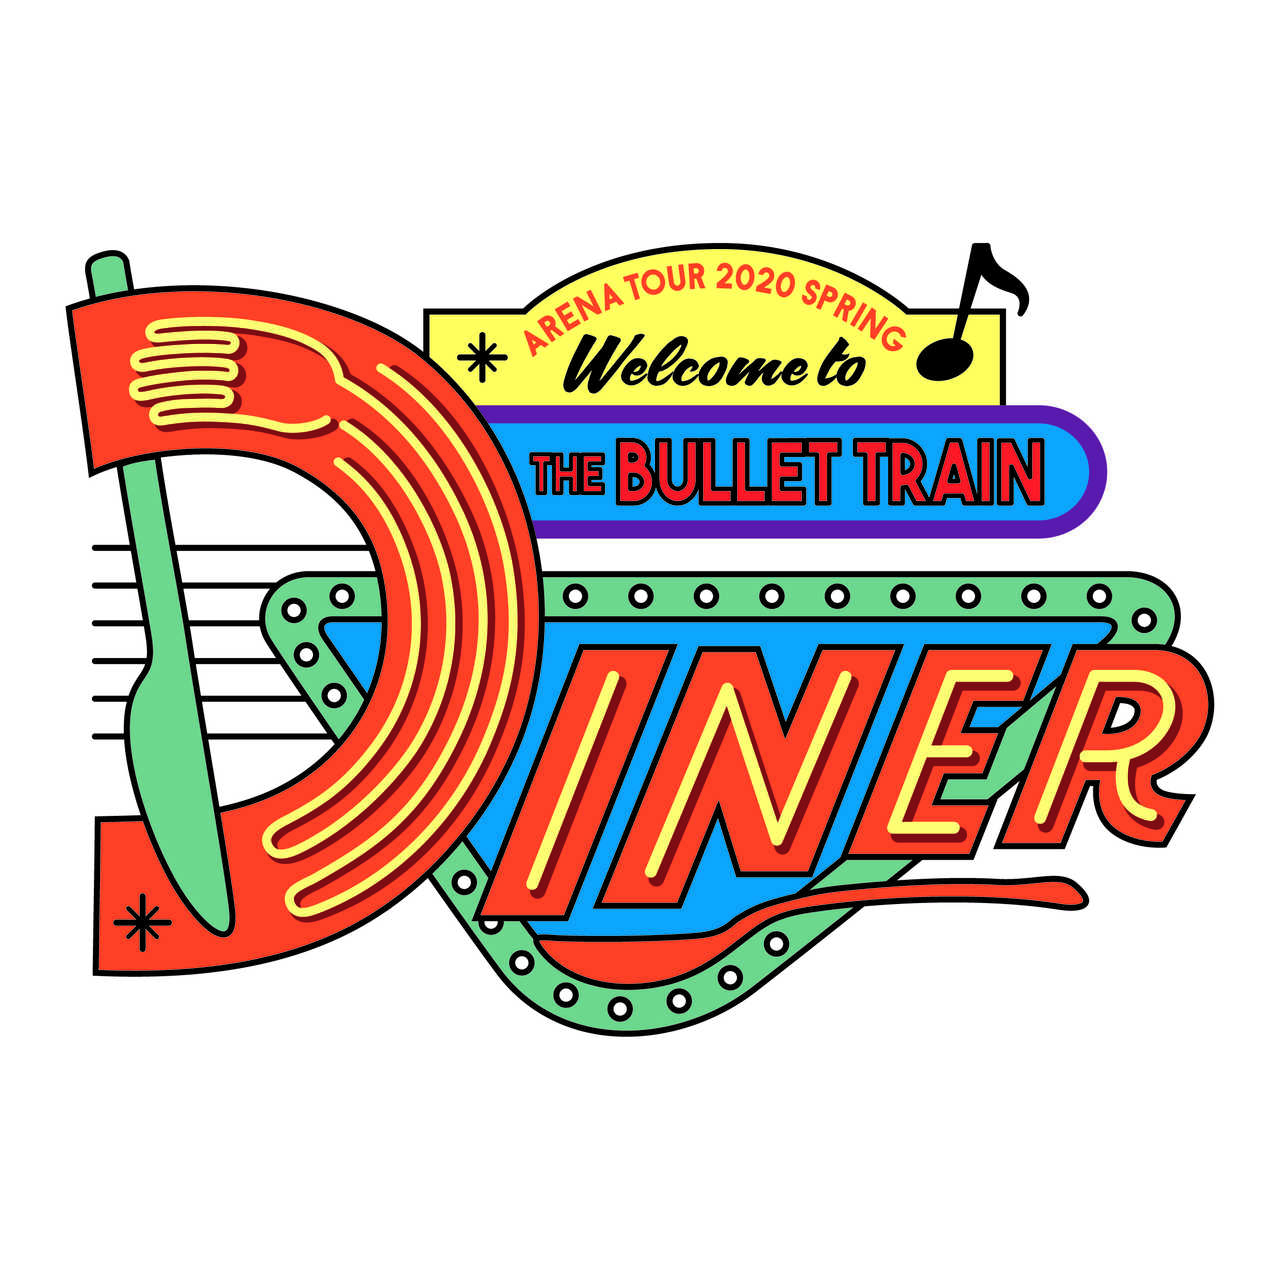 『ARENA TOUR 2020 SPRING WELCOME TO THE BULLET TRAIN DINER』ロゴ